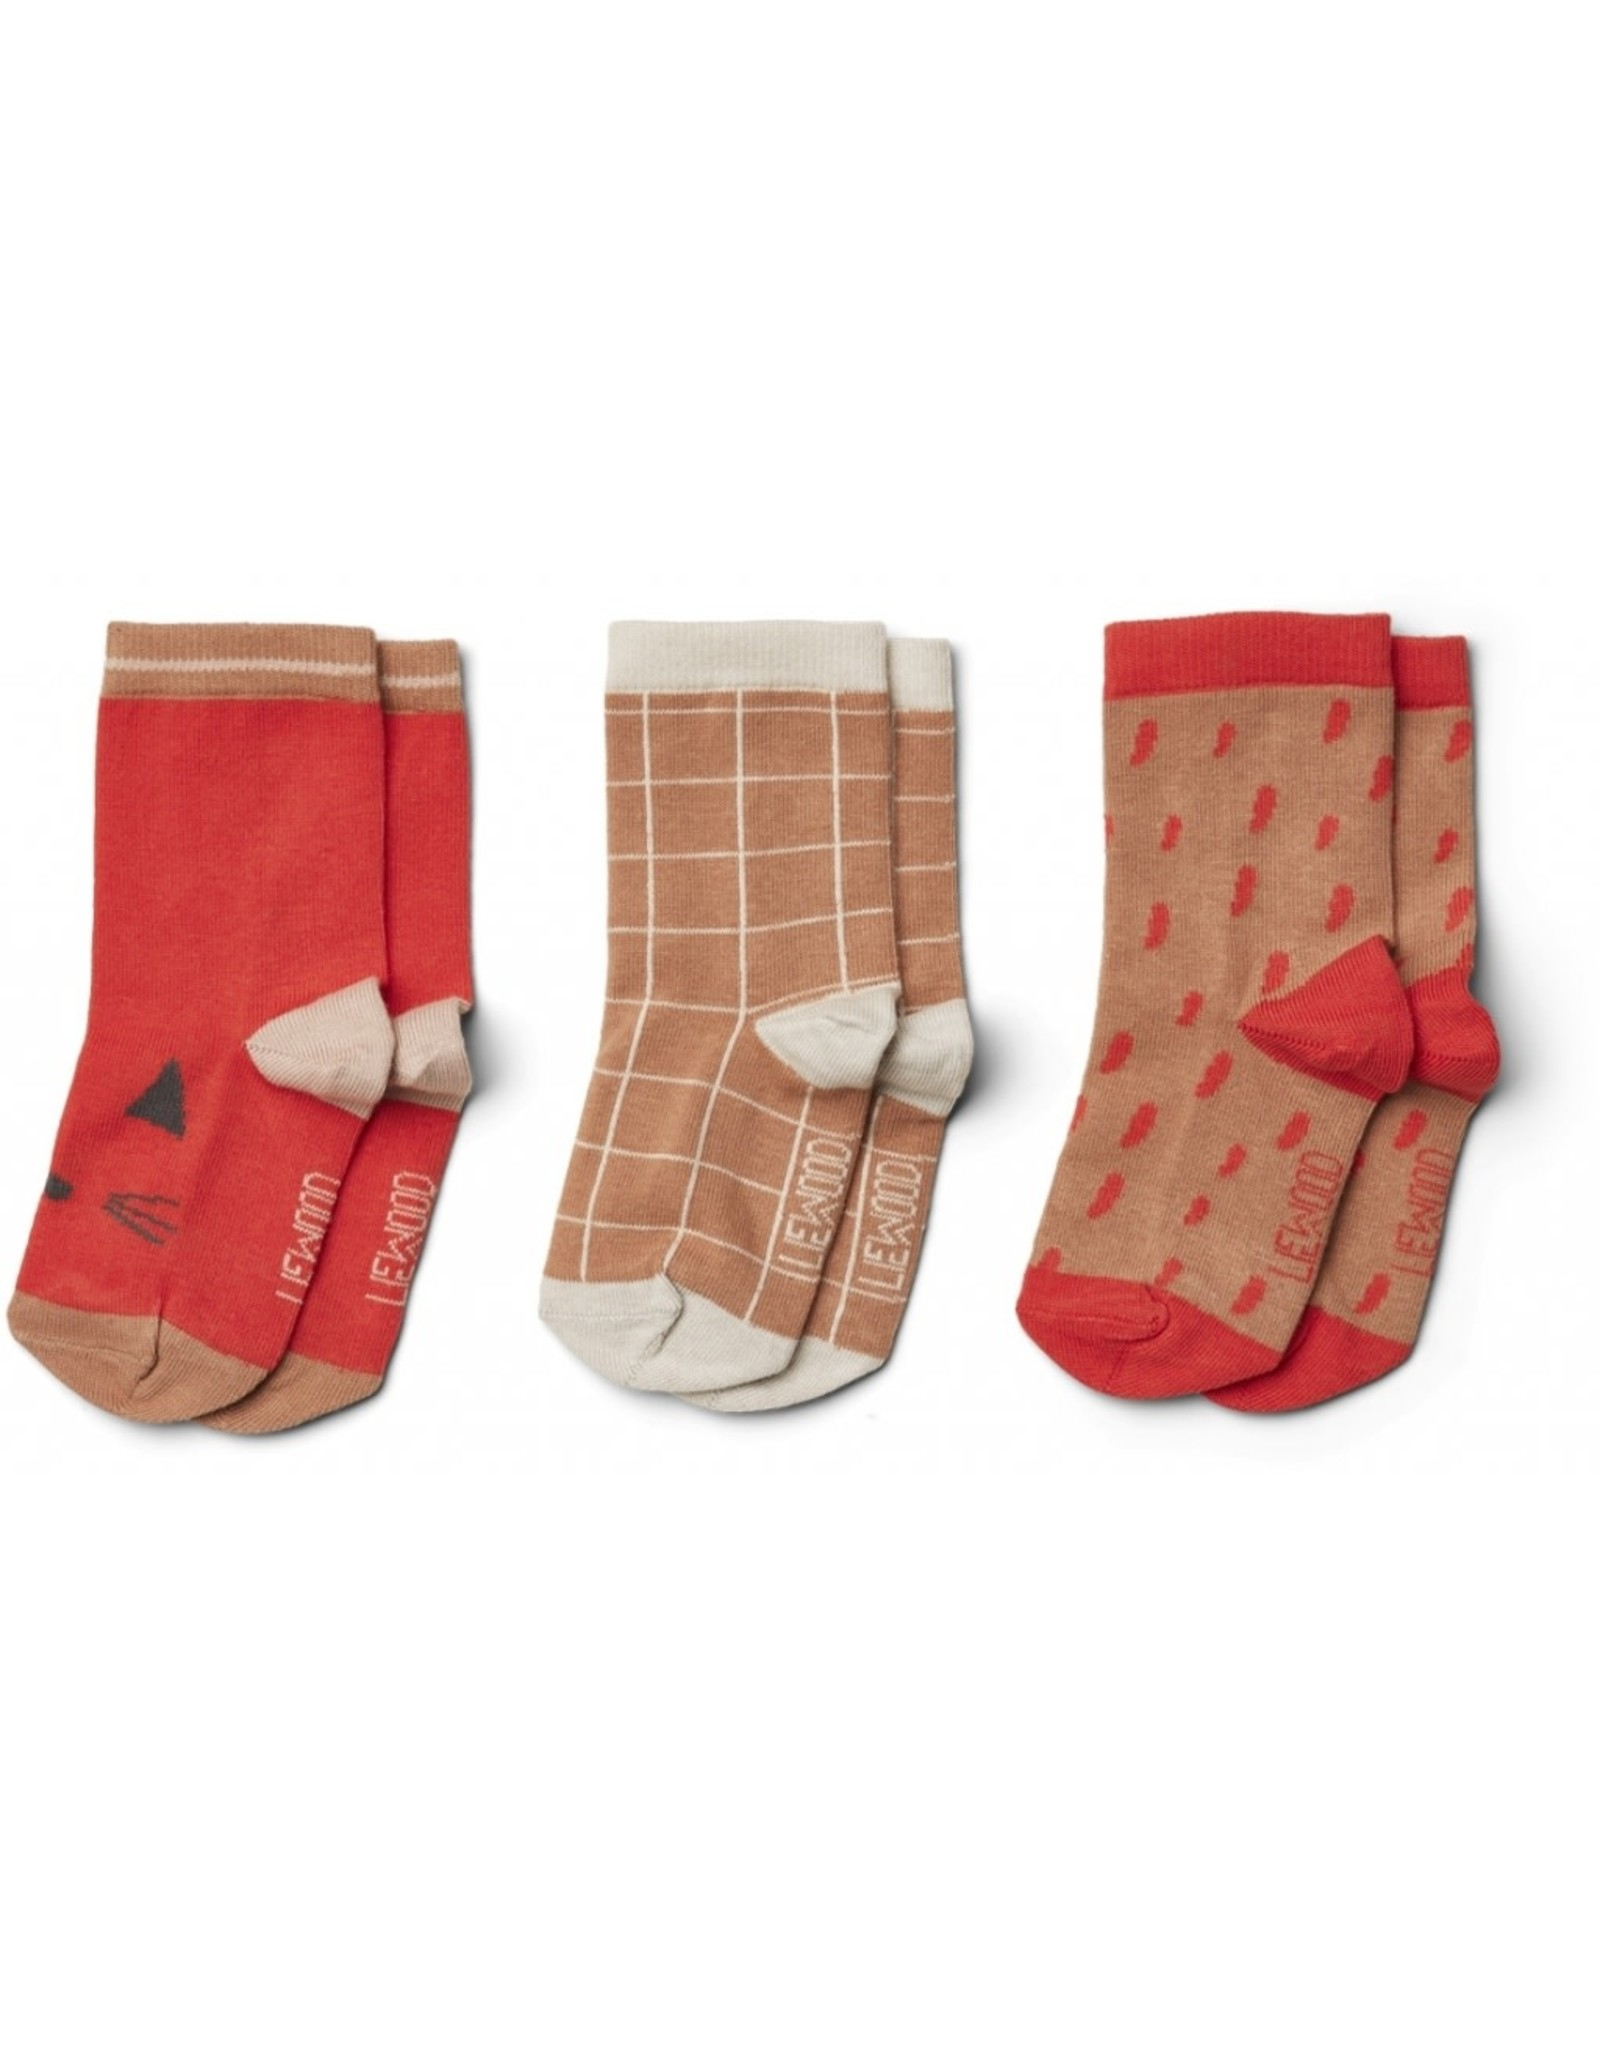 Liewood Silas Cotton Sockx - 3pack Apple Red Multi Mix